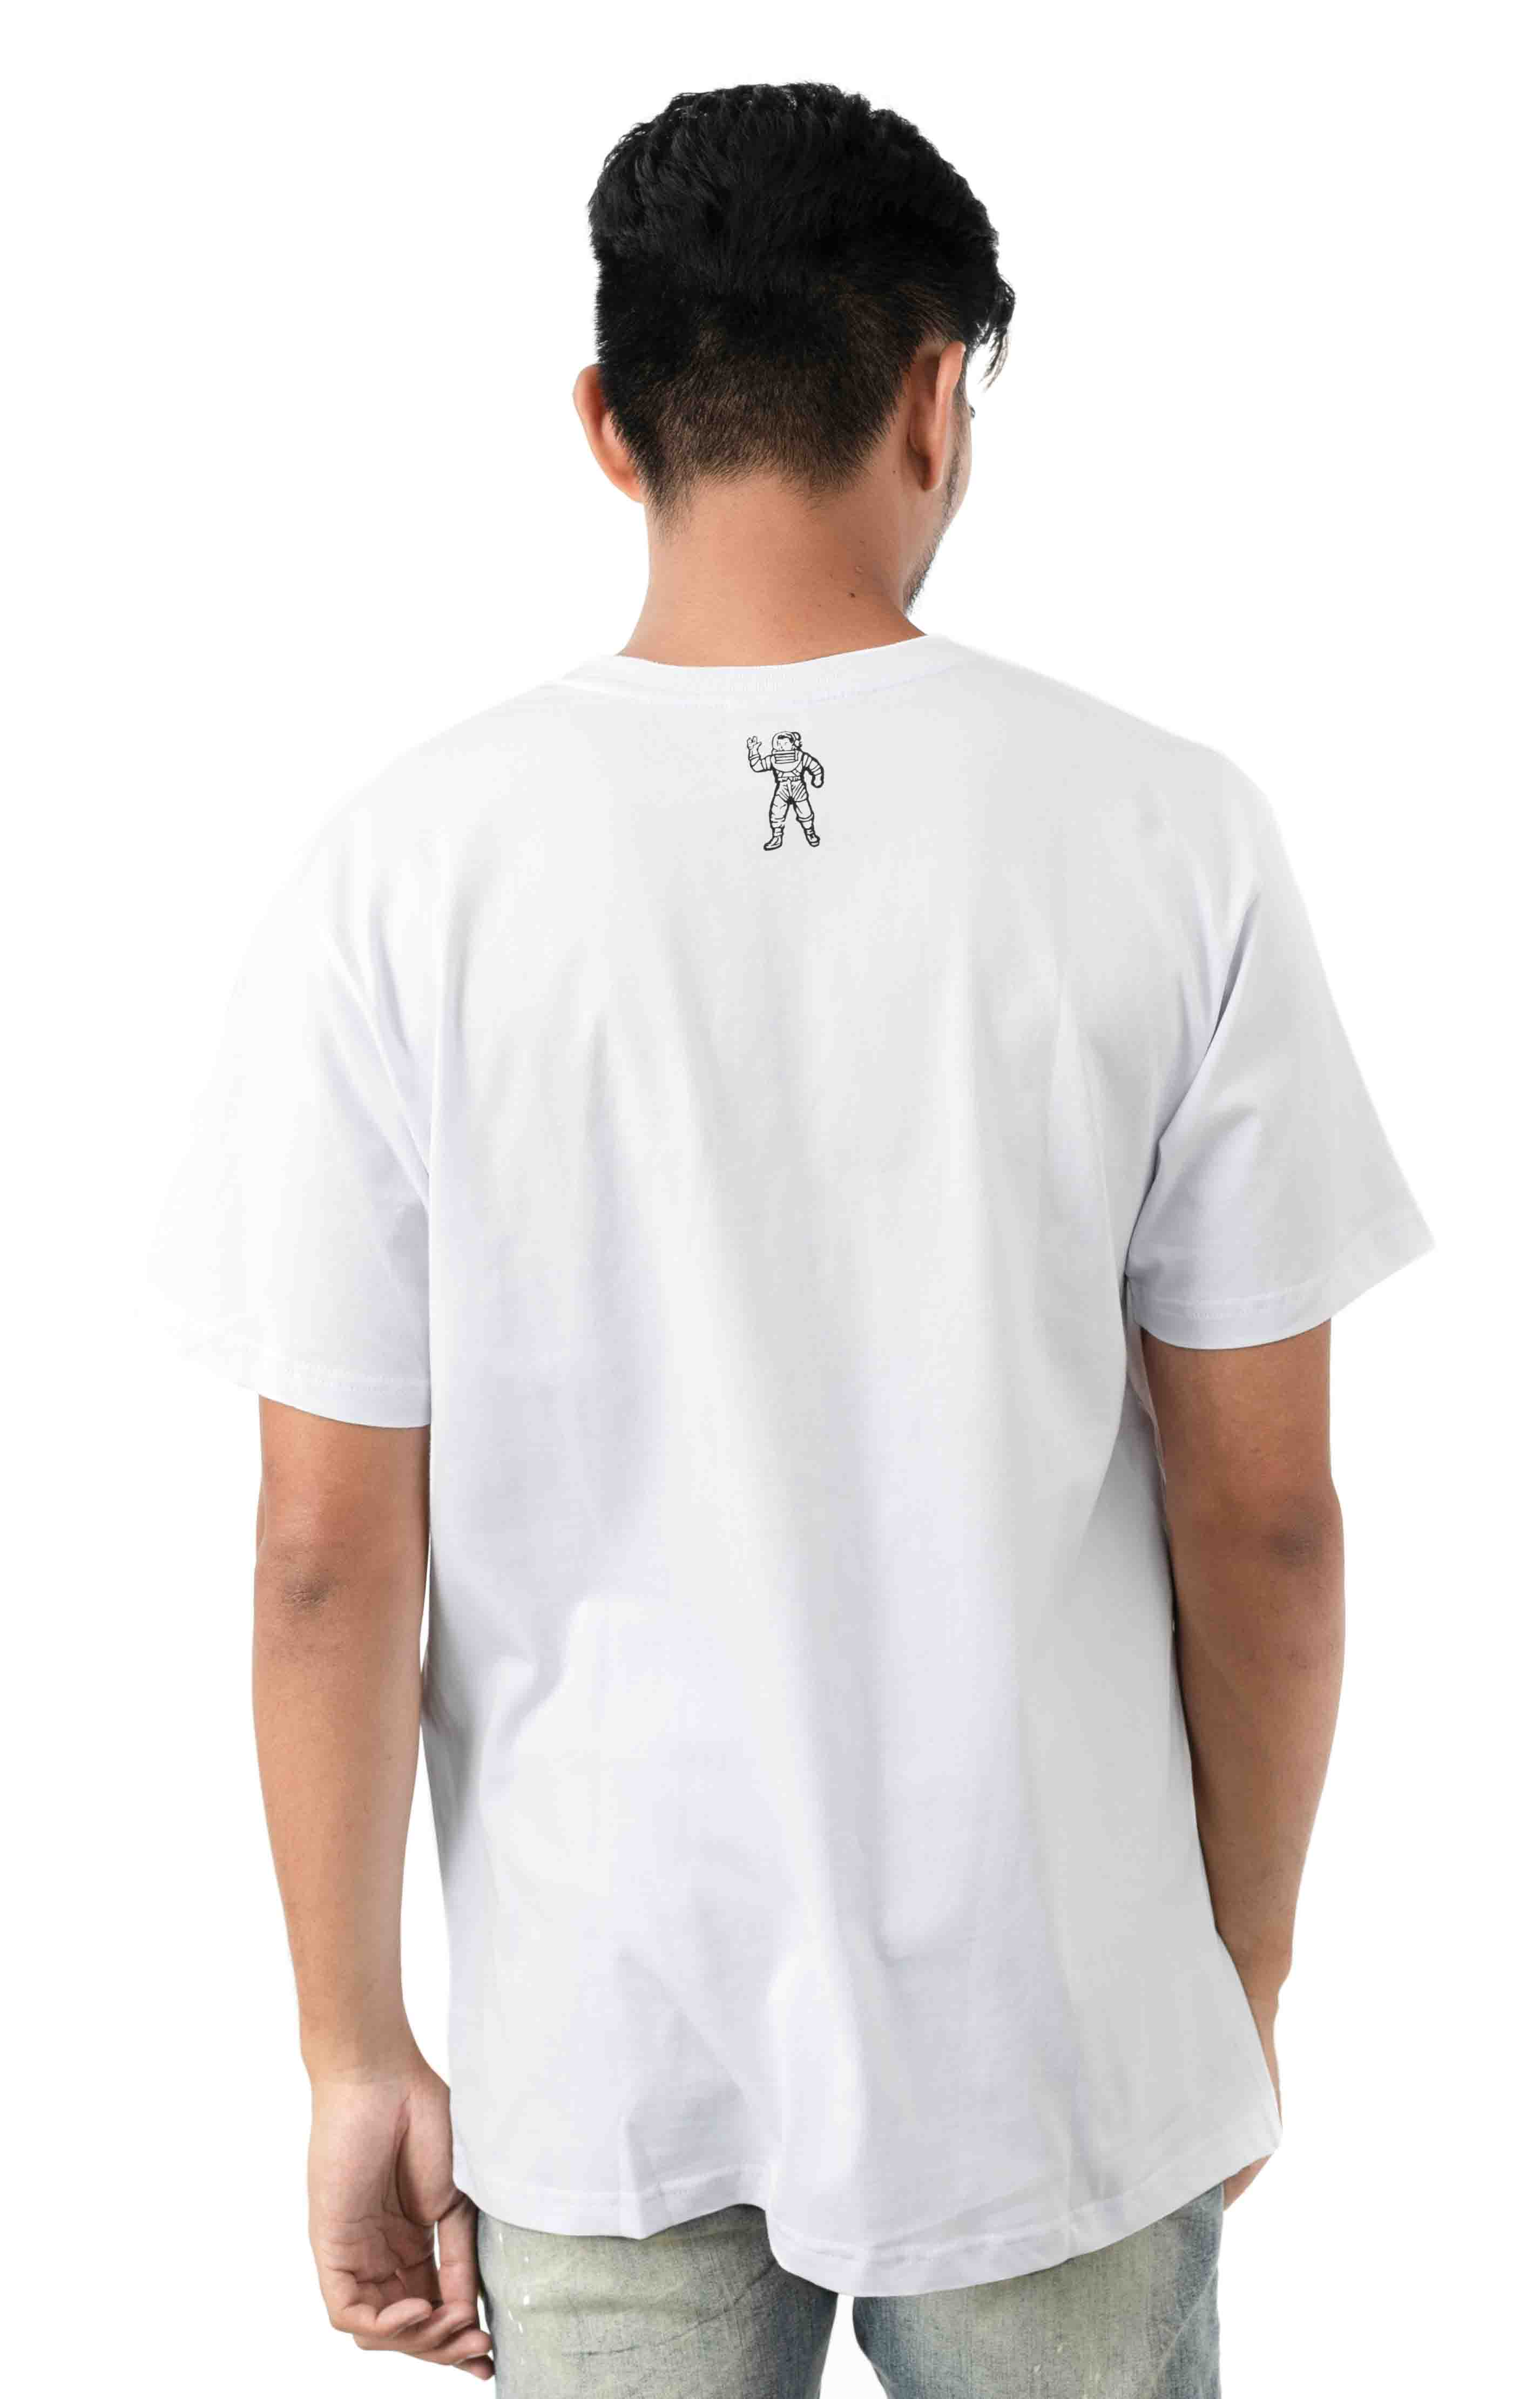 BB Off Registration T-Shirt - White  3